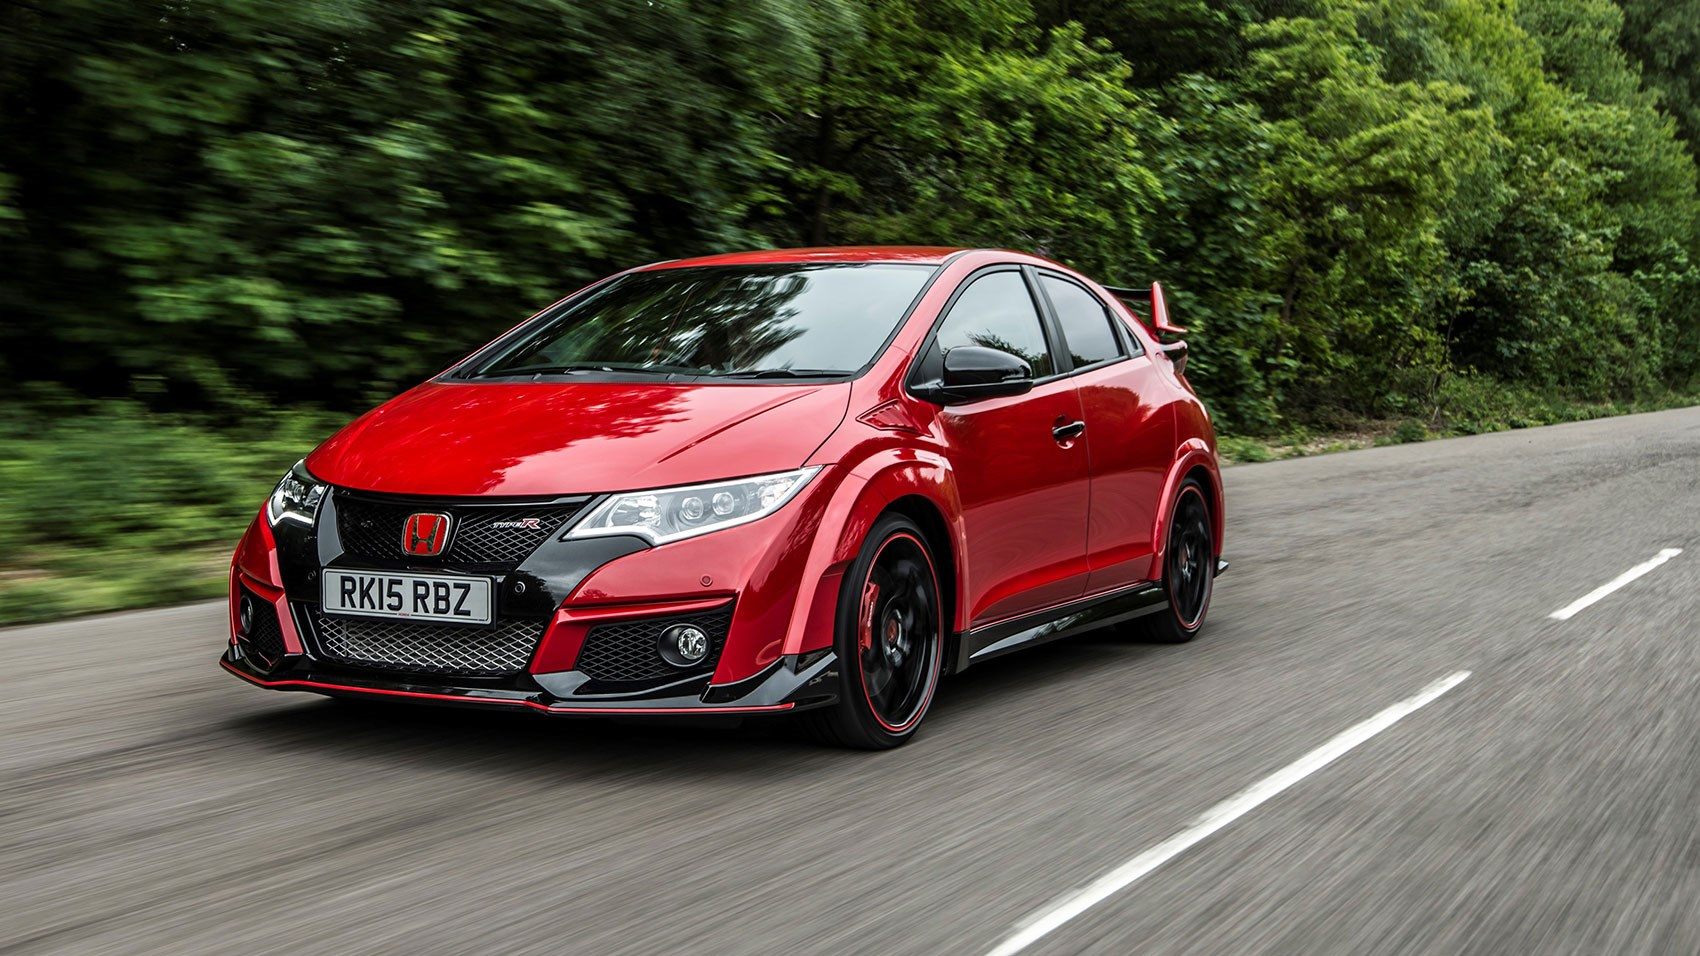 ... the Civic Type R is a highly biddable hot hatch ...